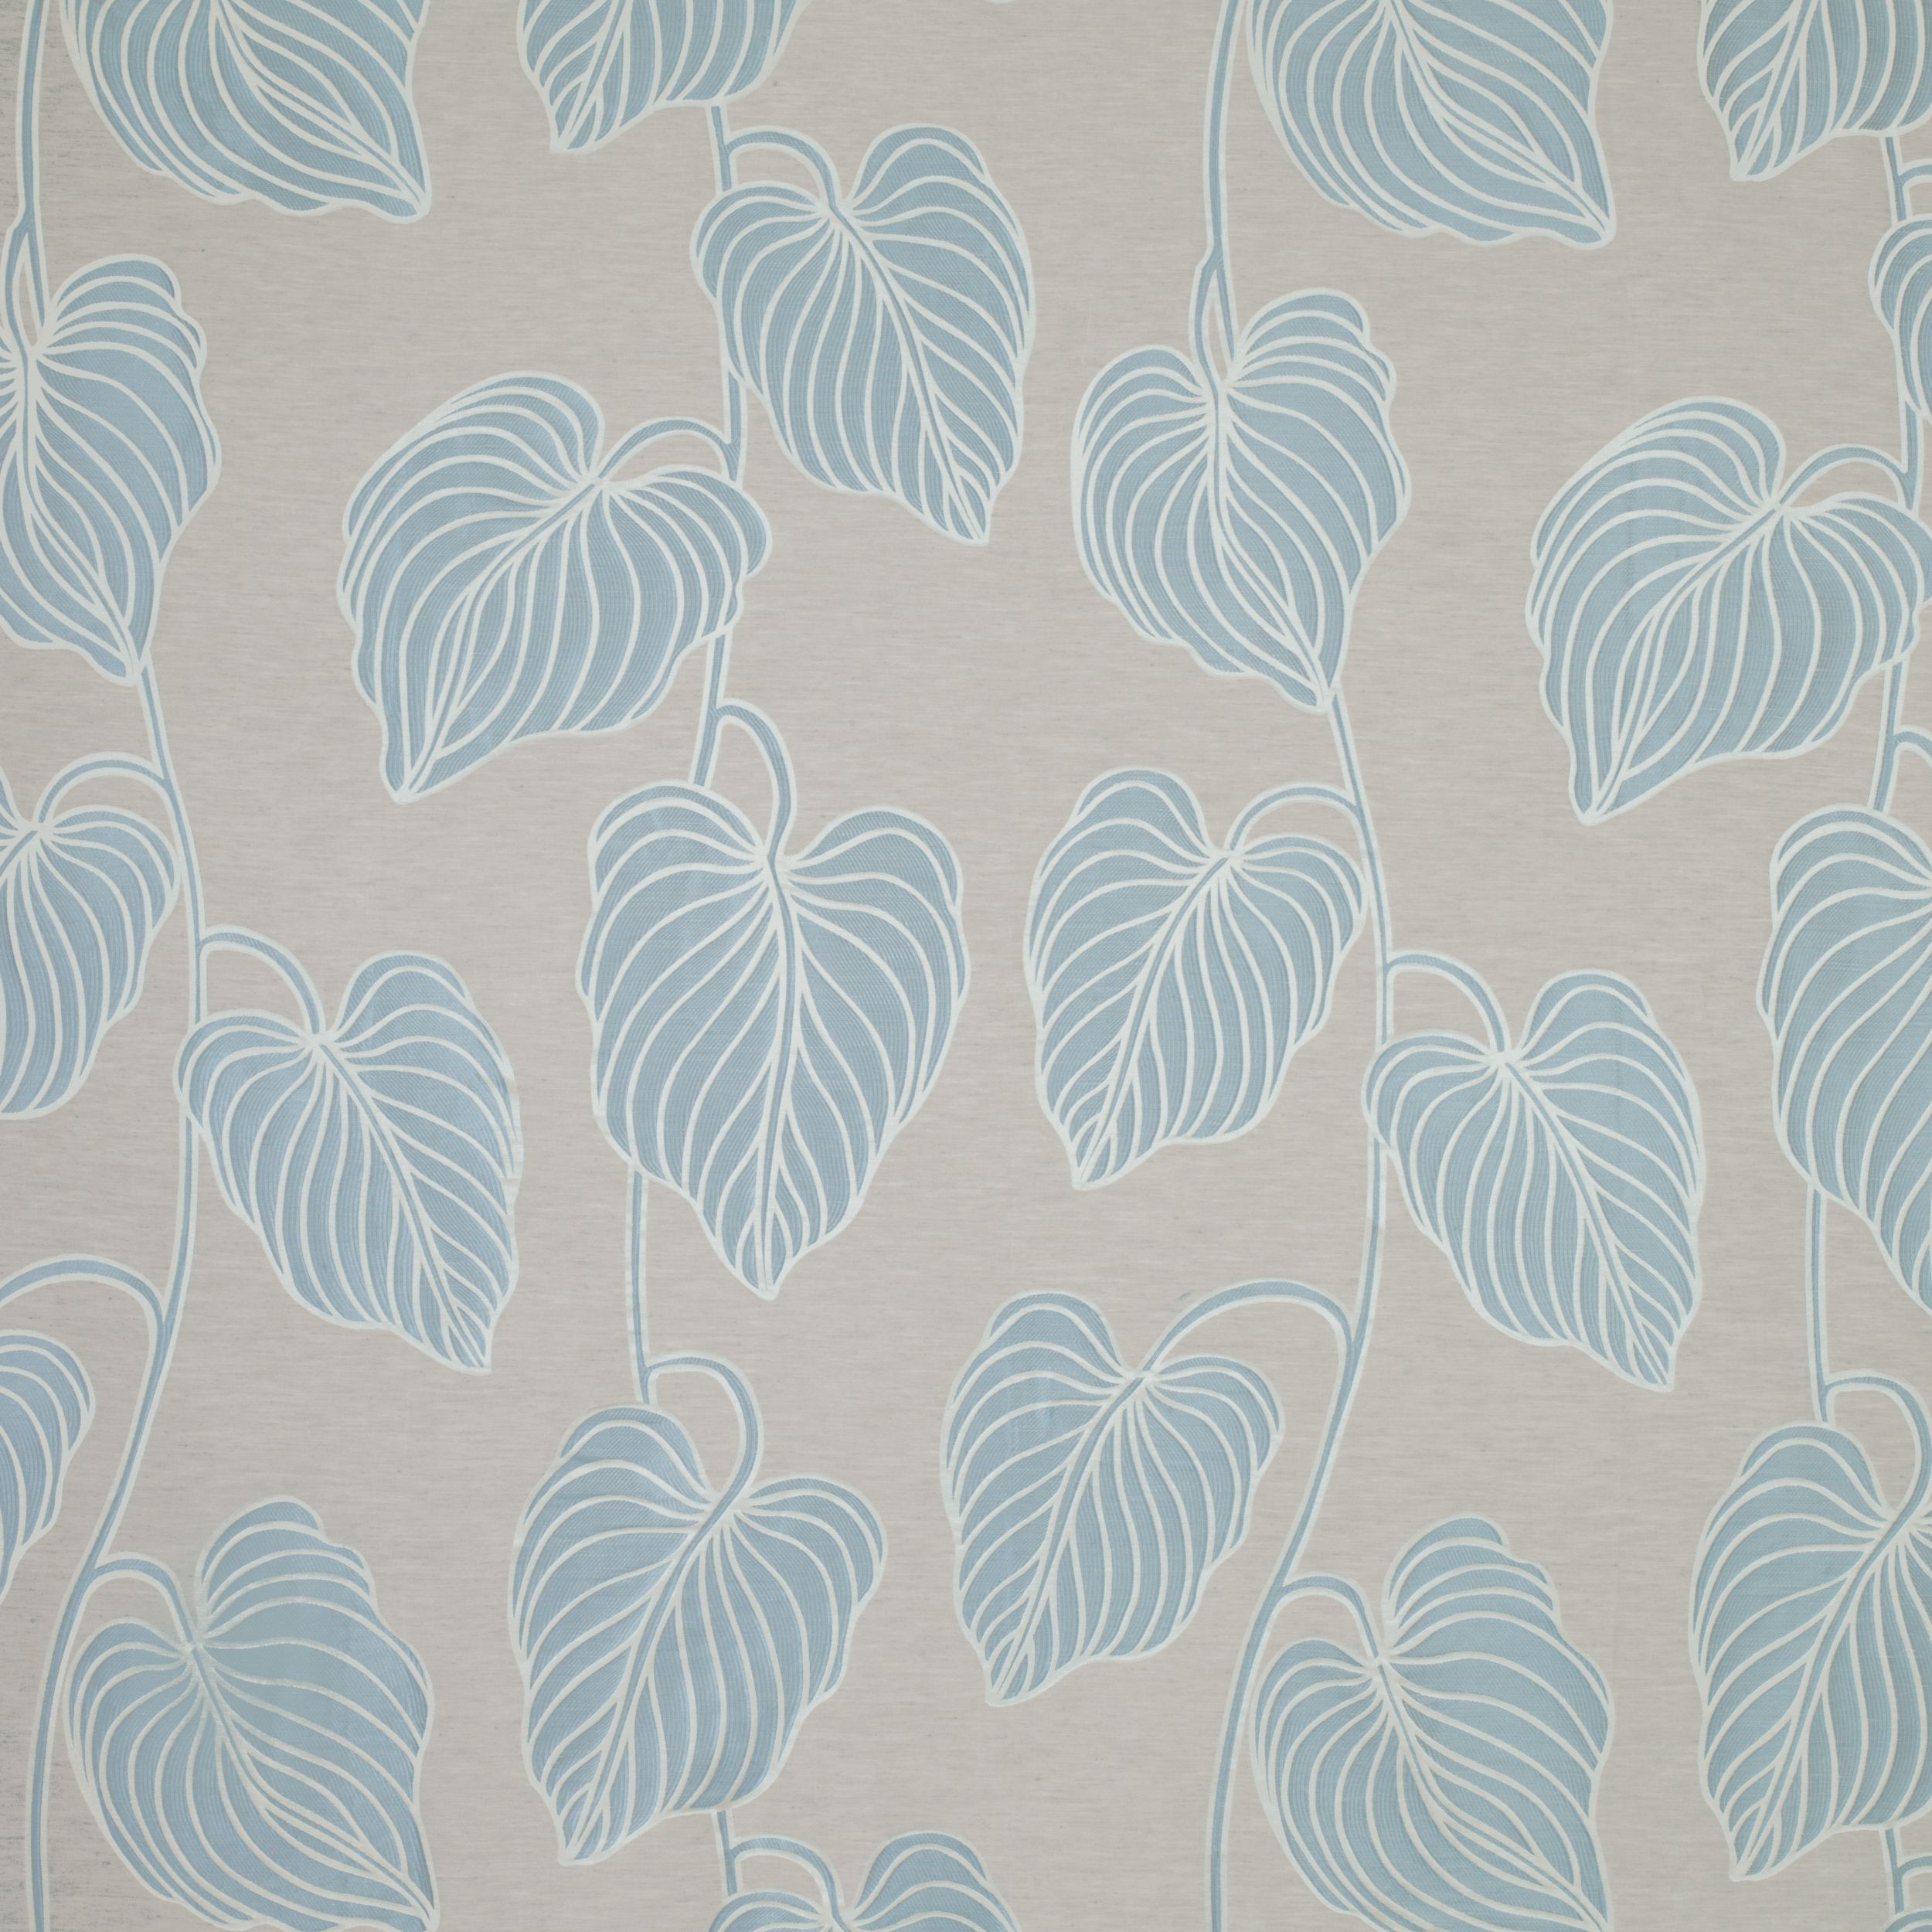 Manhattan blue leaf fabric | Fabric | Pinterest | Laura ashley ...